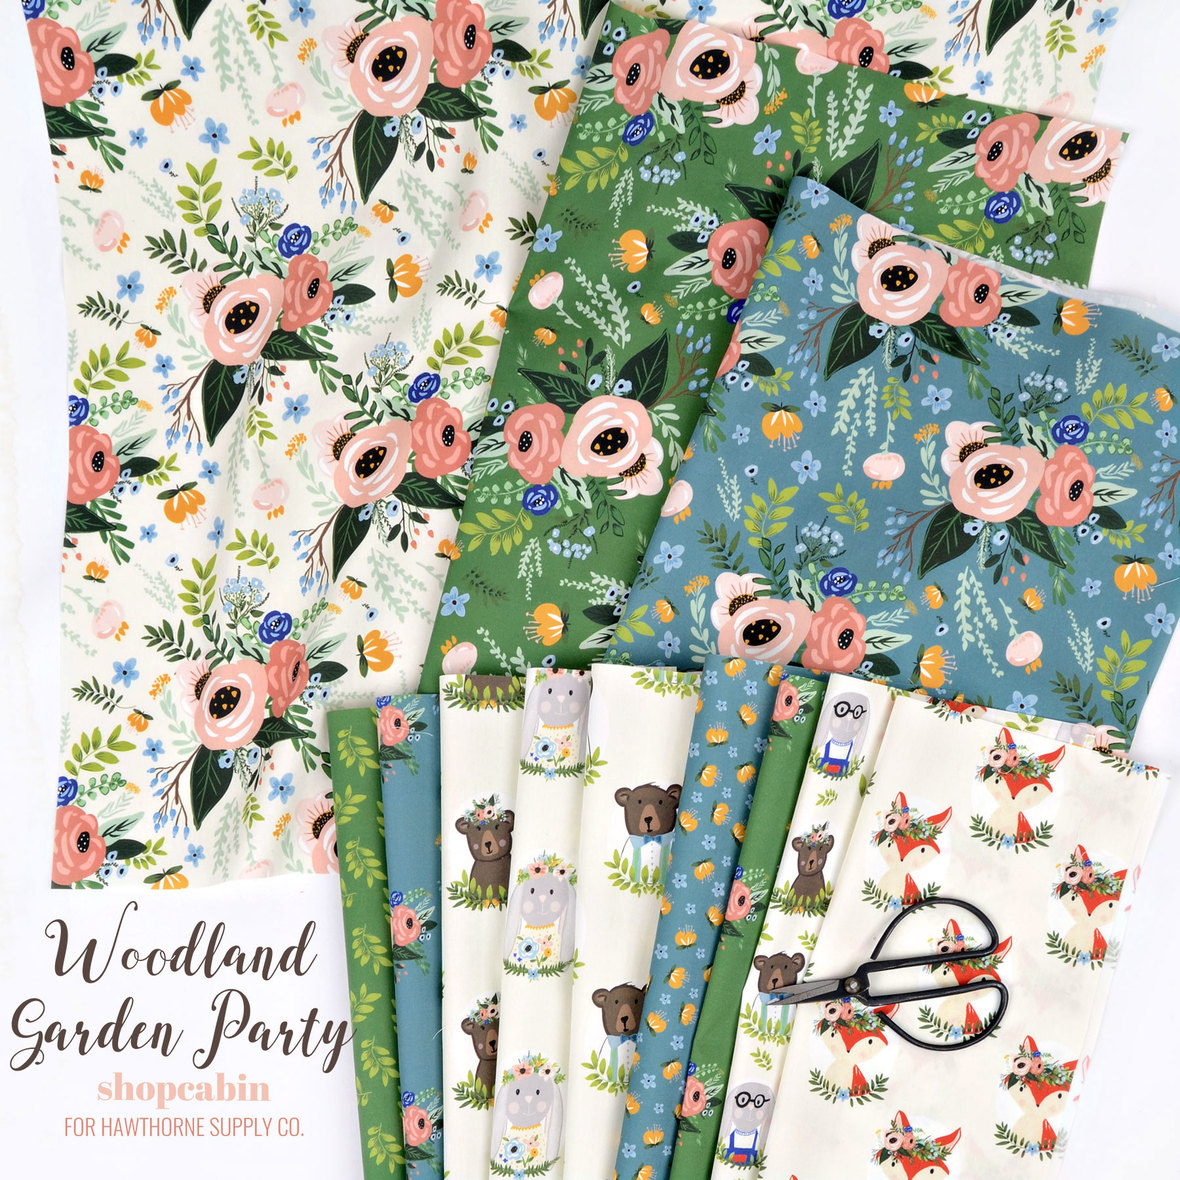 Poster-Woodland-Garden-Party-Shopcabin-fabric-at-Hawthorne